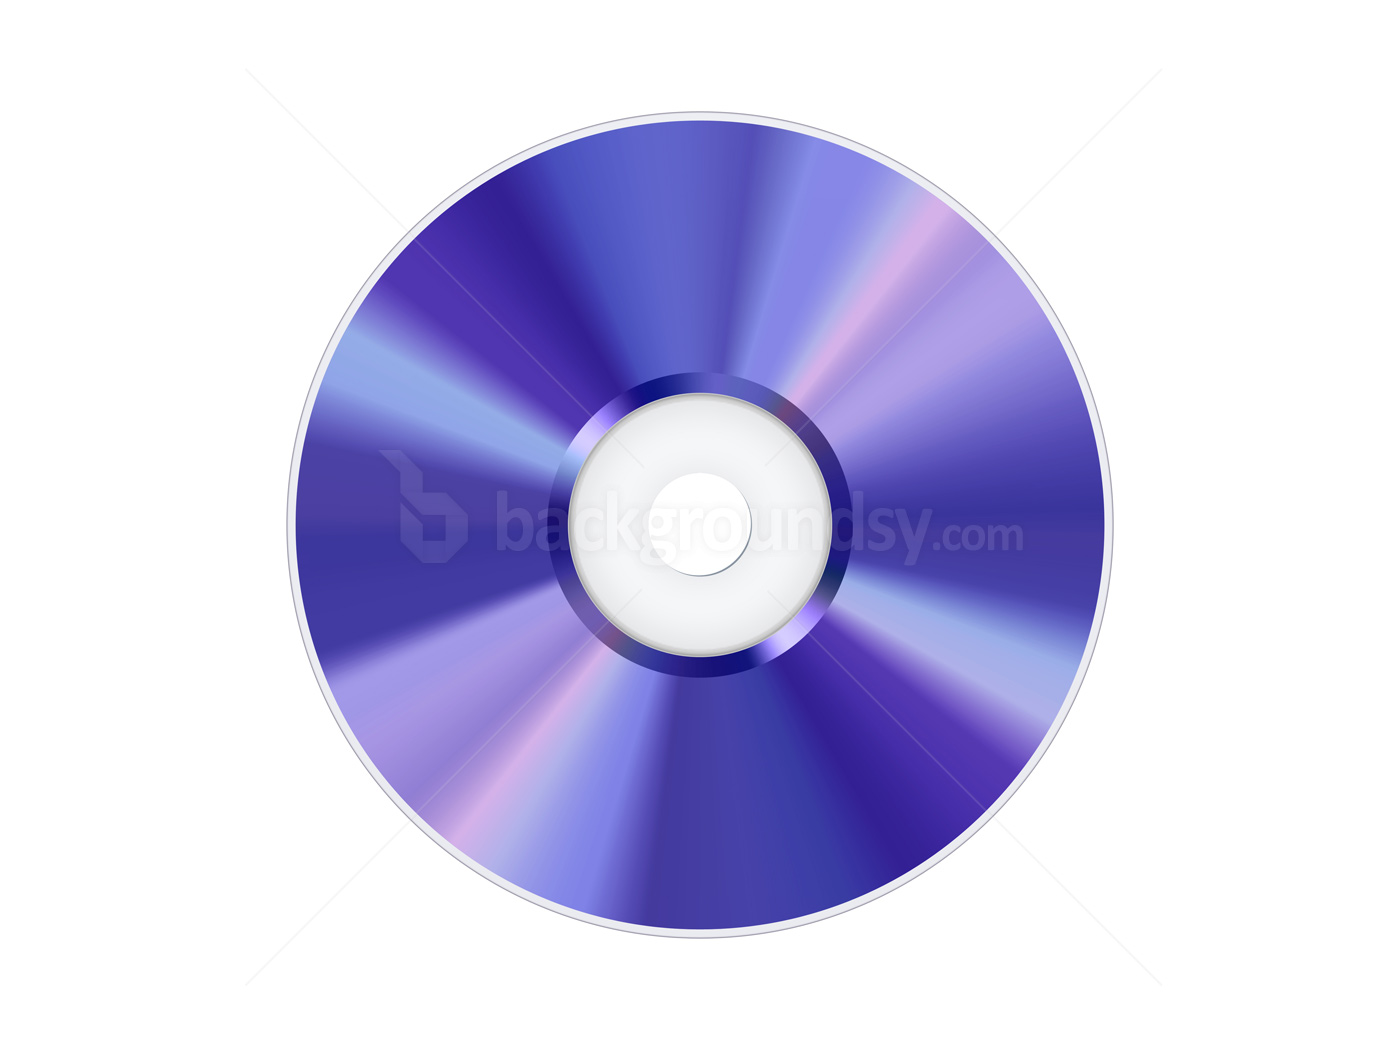 How to put pictures on a dvd disc Minimize